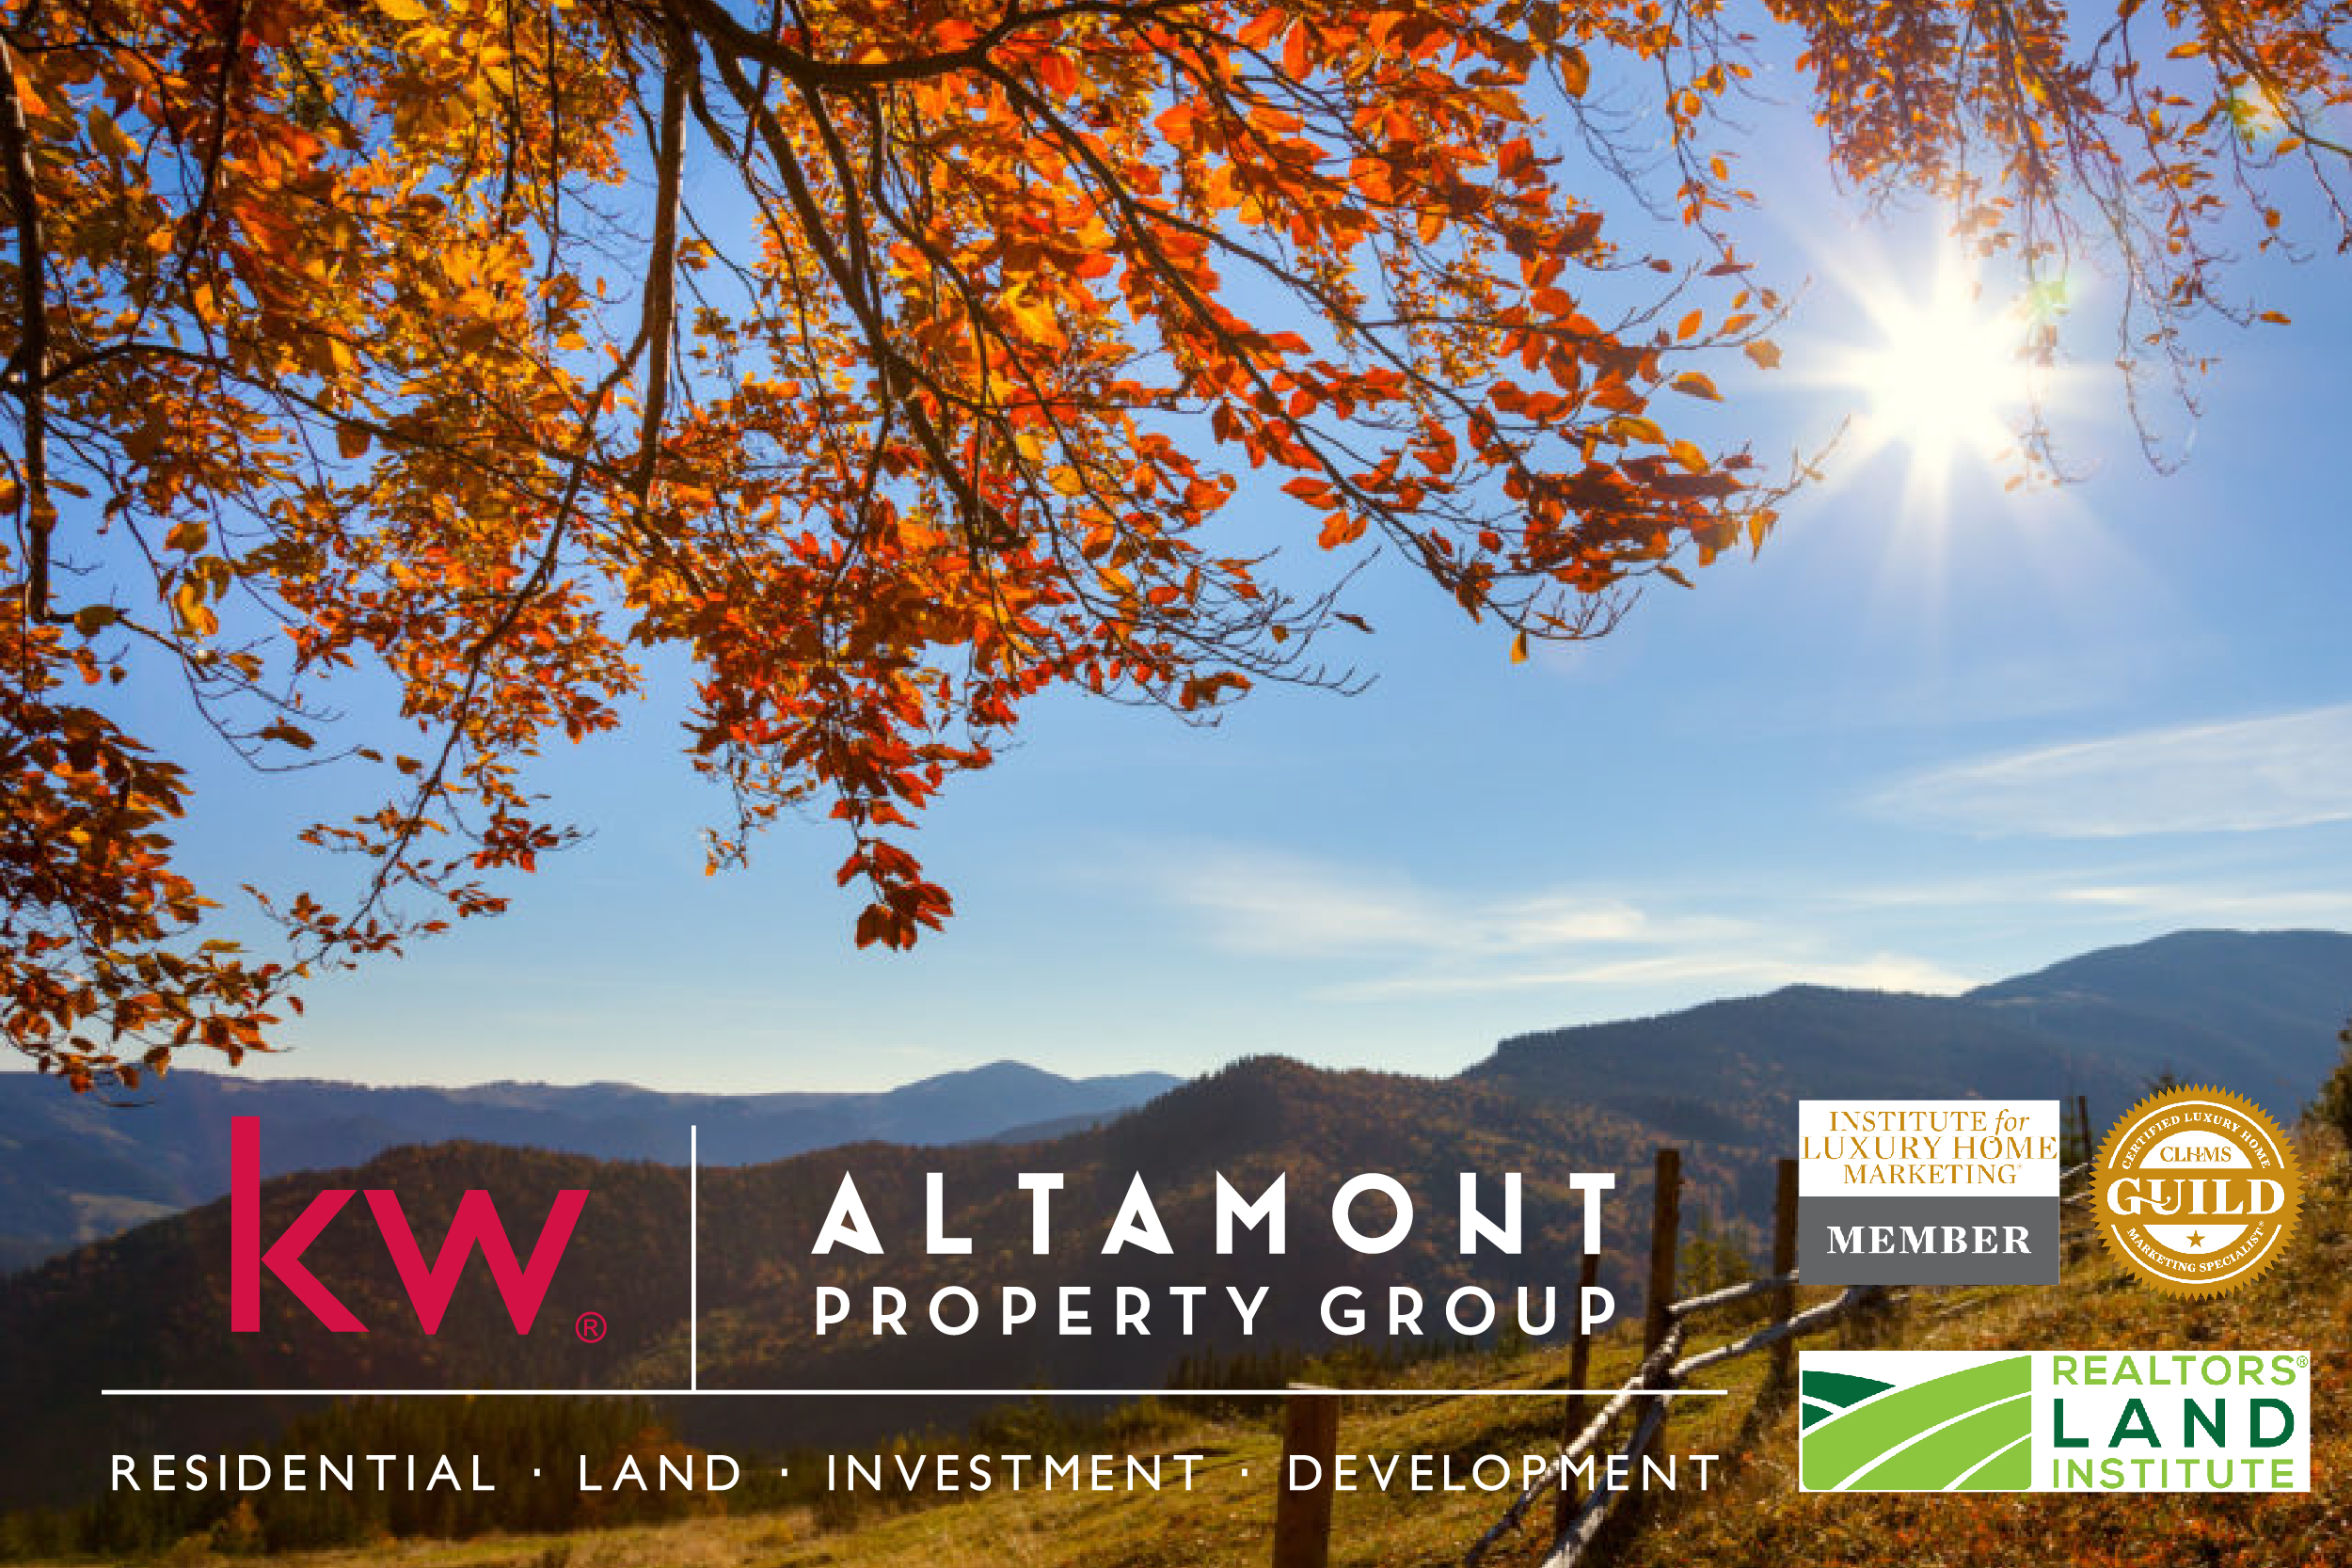 Altamont Property Group